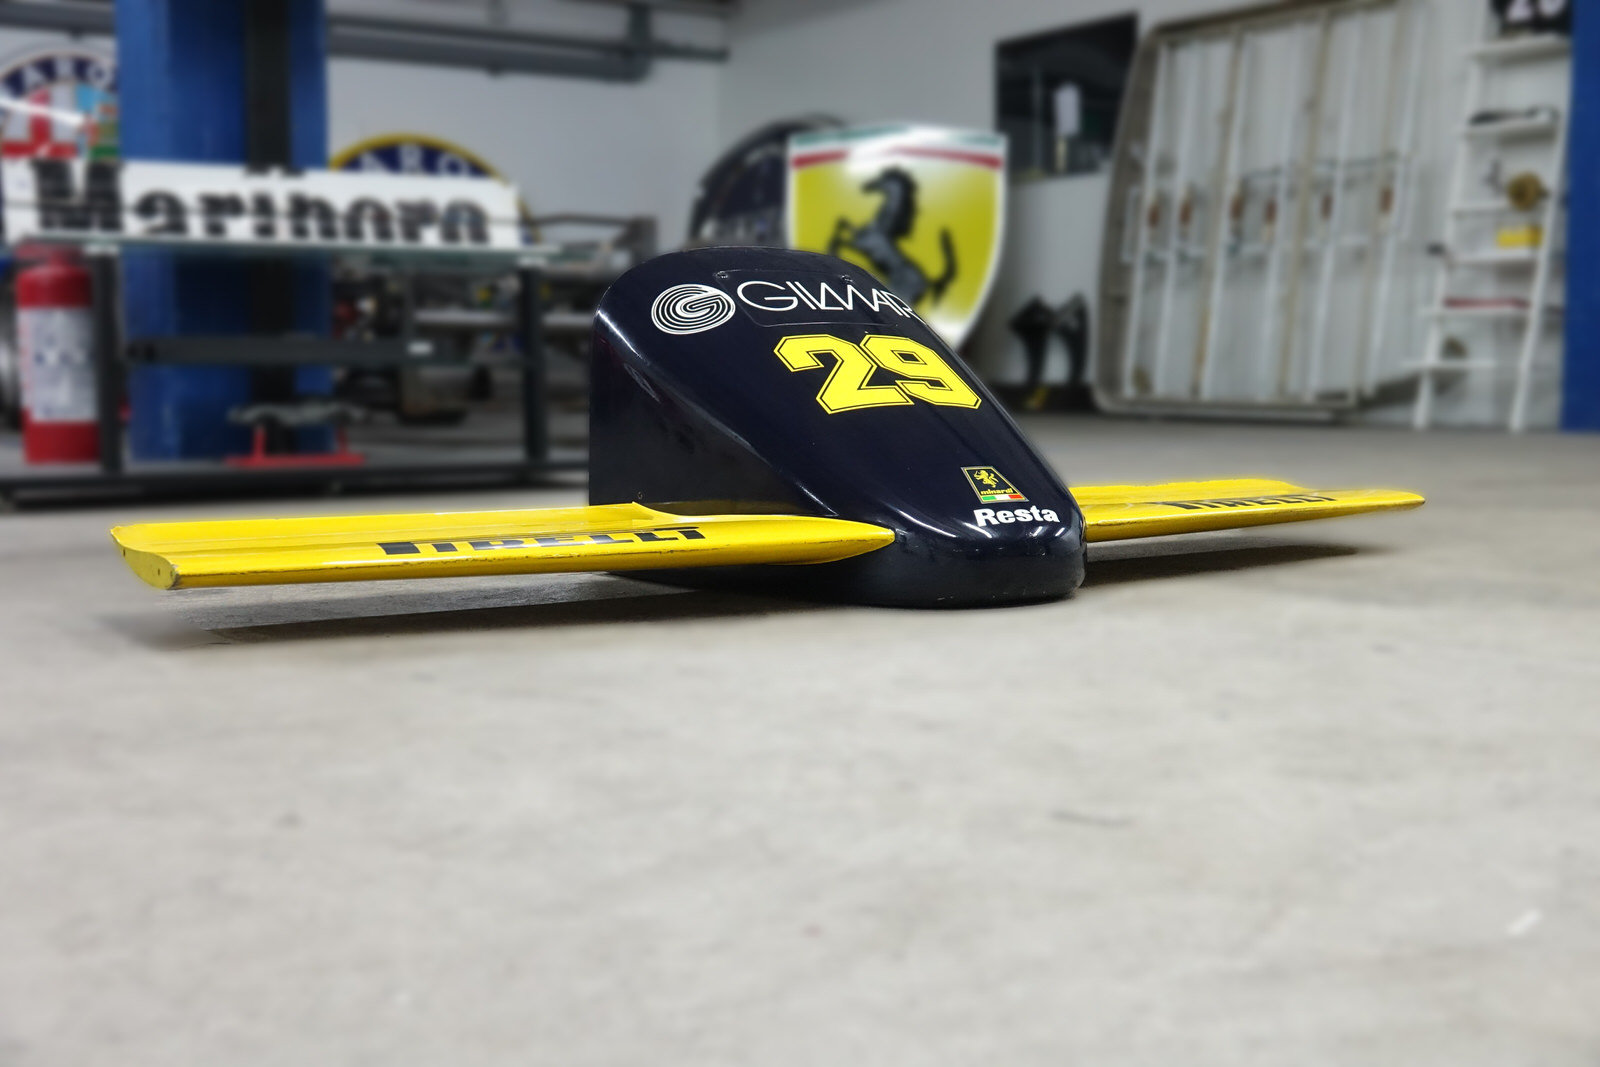 1985 Minardi M185 F1 Front Nose For Sale (picture 7 of 8)